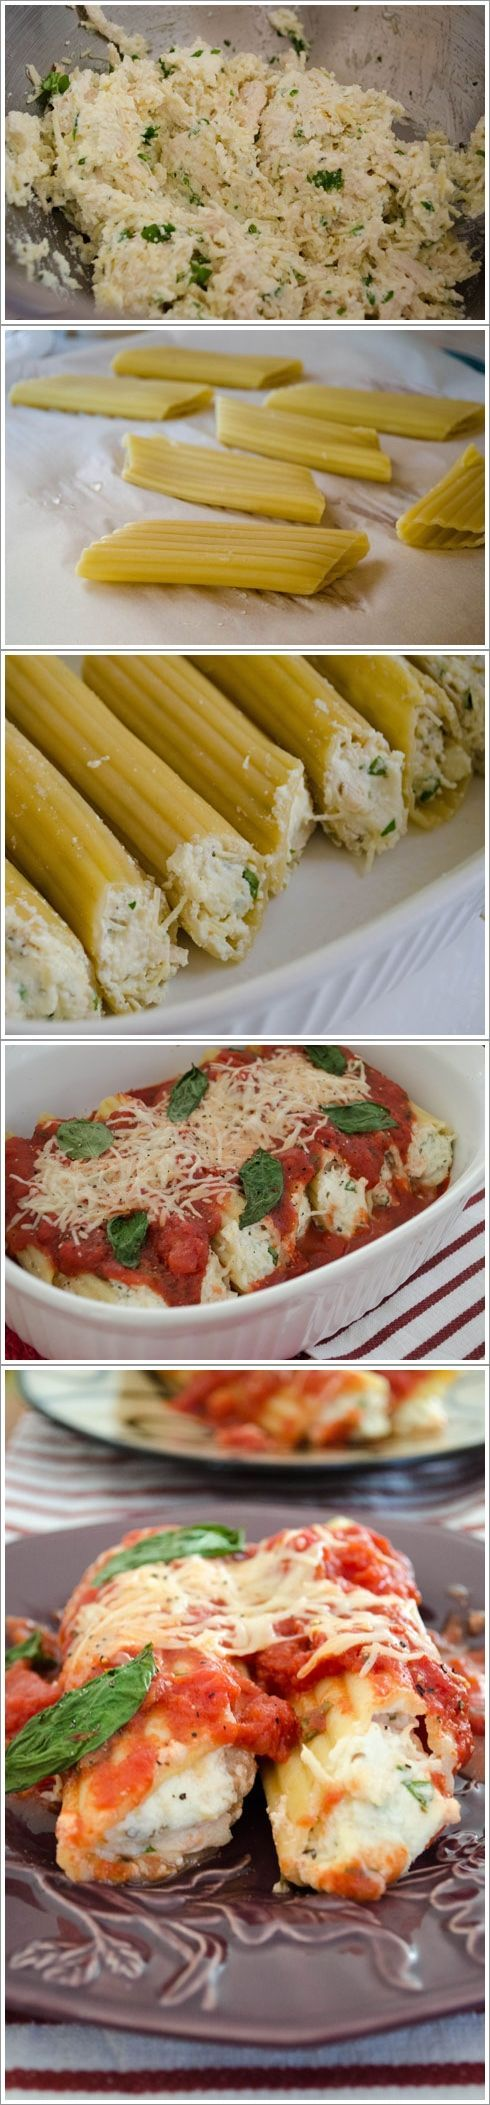 Parmesan Chicken Manicotti - love the chicken in the filling. add a clove of garlic to the filling and another to the sauce. also add 1/2 tsp red pepper flakes to the sauce.